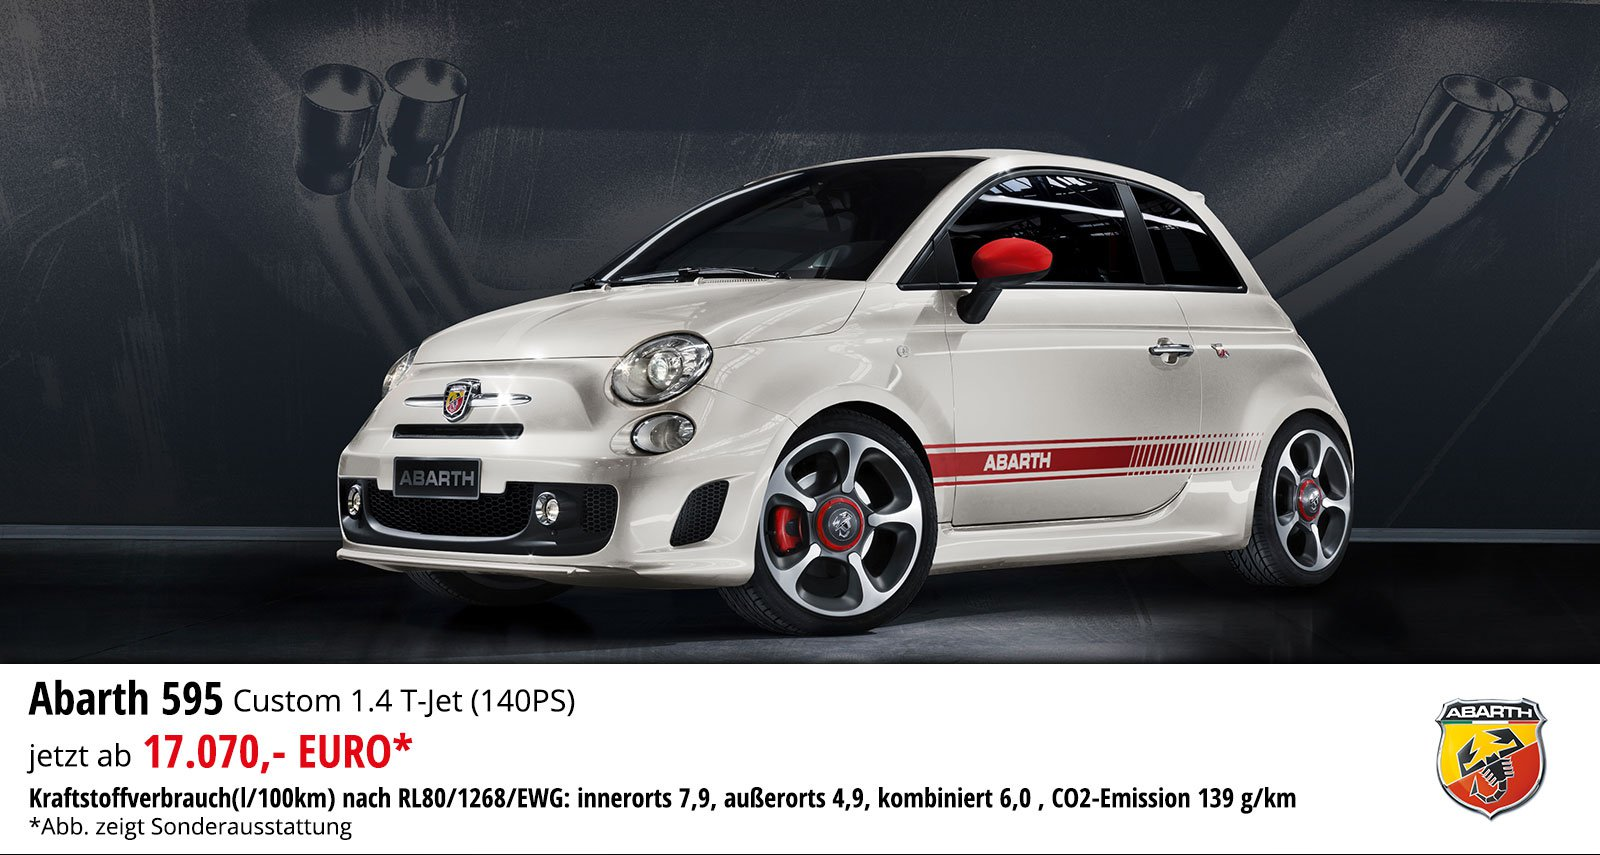 Abarth 595 Custom 1.4 T-Jet